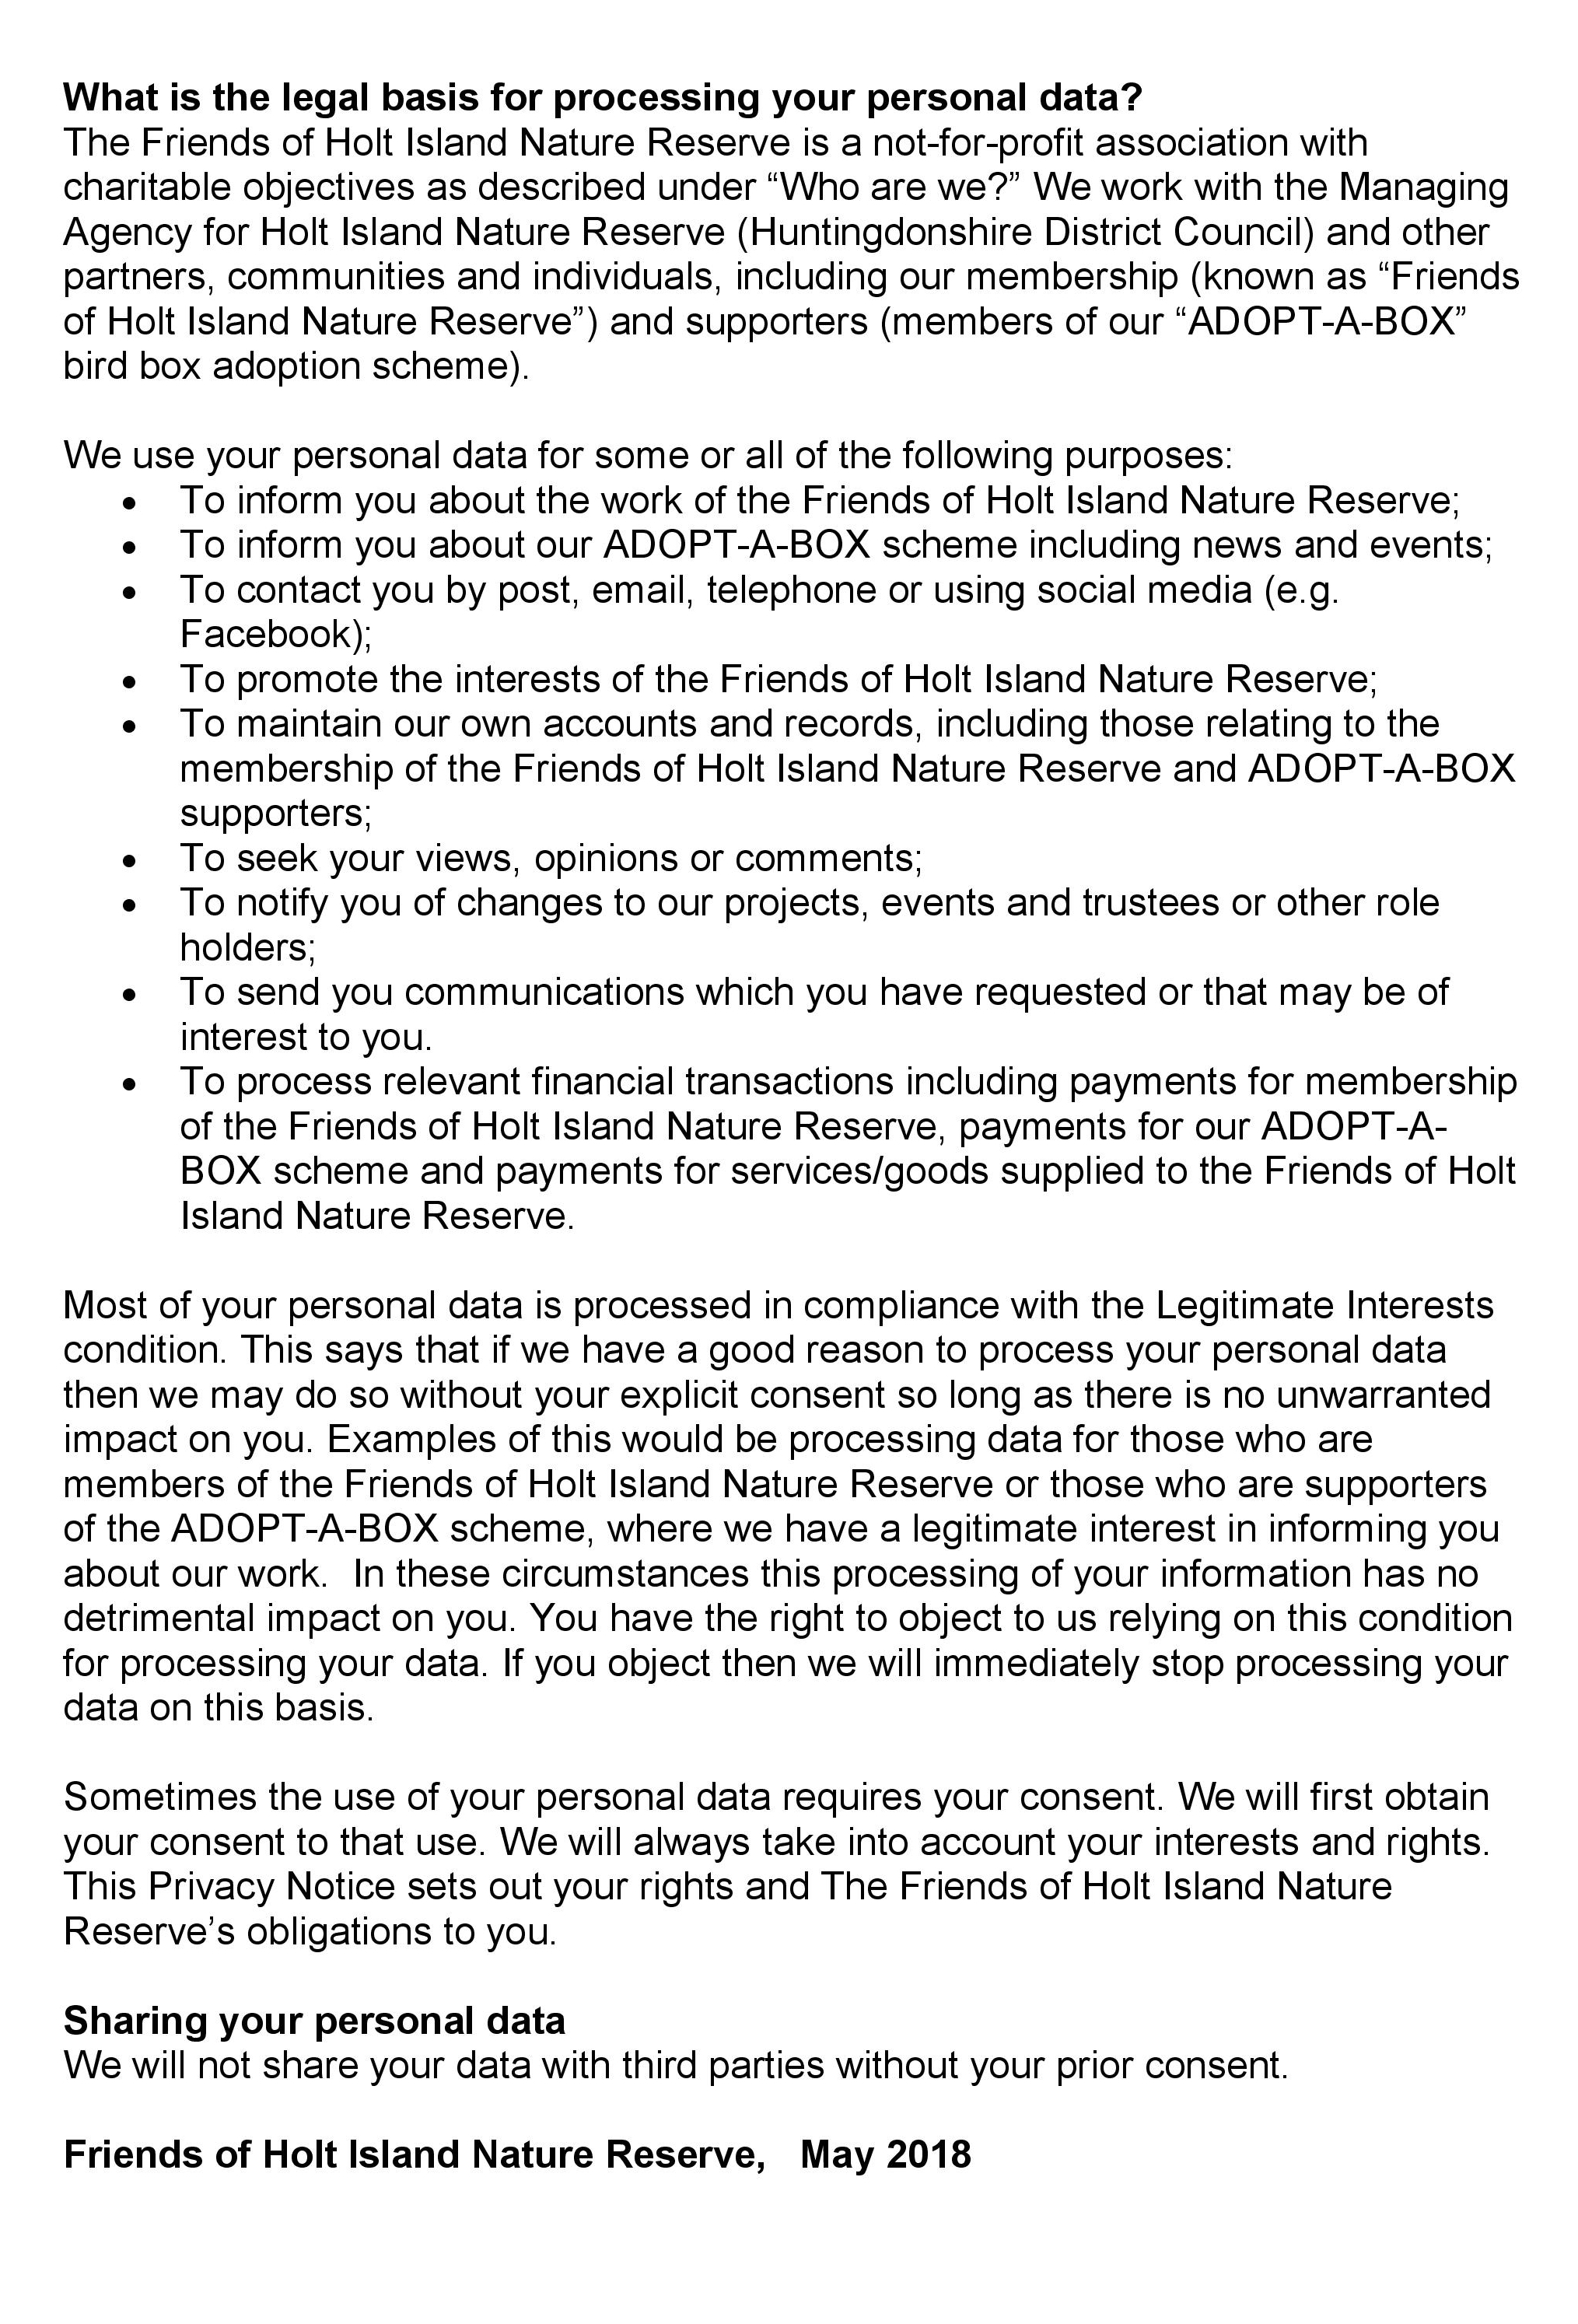 Privacy Notice Page 2